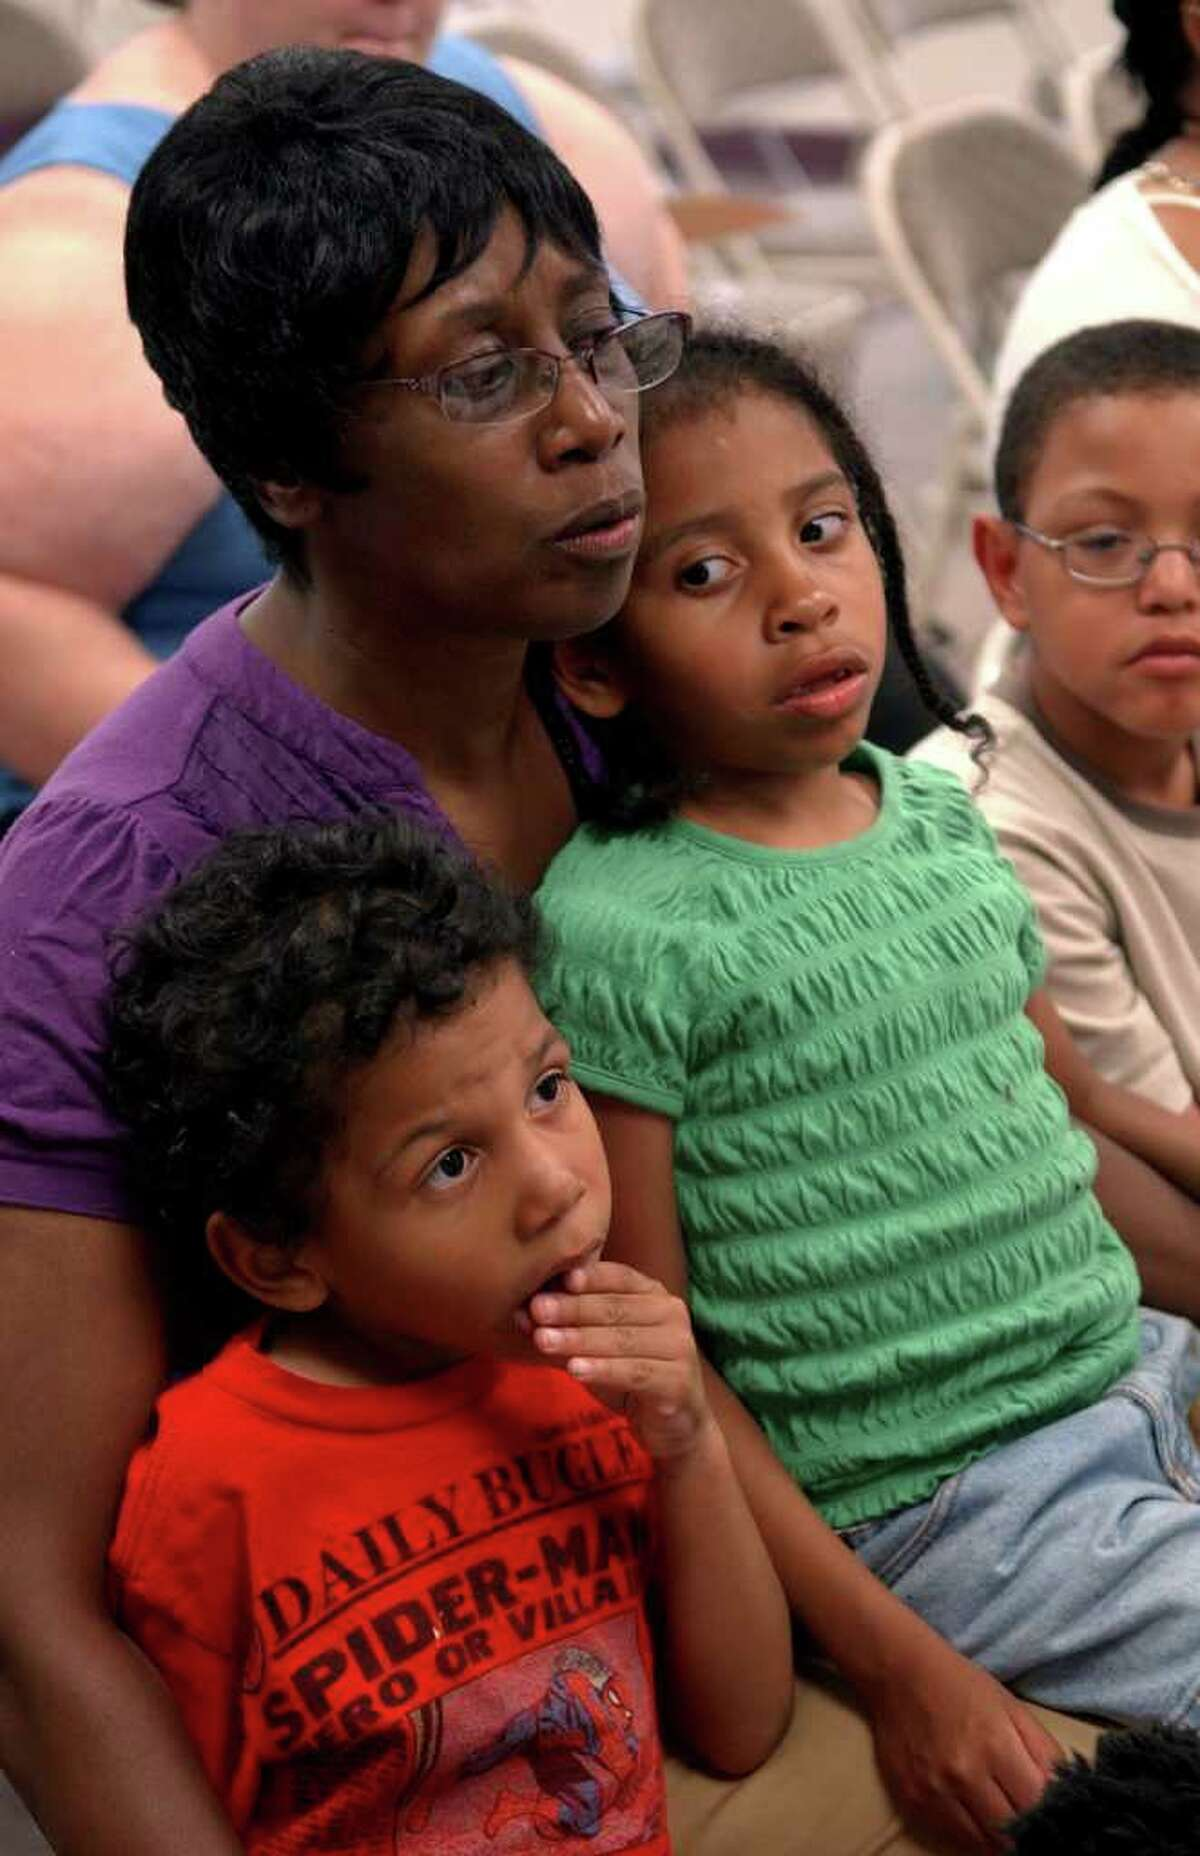 Carol Nunley sits with her grandchildren Andreas Garcia, 3, and Arin, 5, during a meeting of Connecticut Parents Union at the Burroughs Community Center in Bridgeport, on Wednesday July 6, 2011.